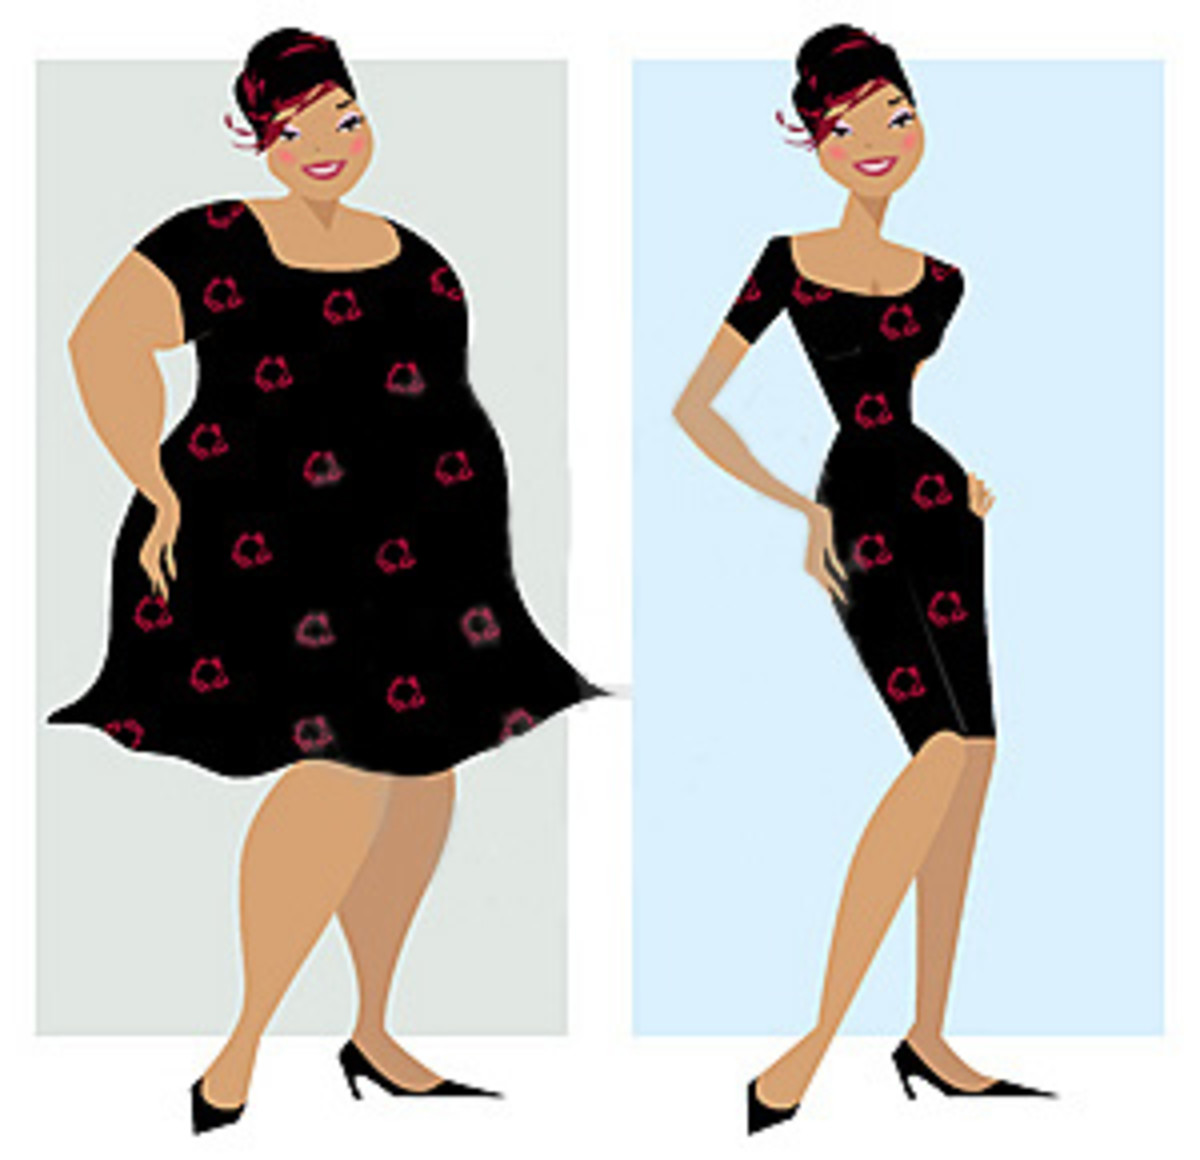 weight-loss-improvements-5-differences-after-losing-2-stones